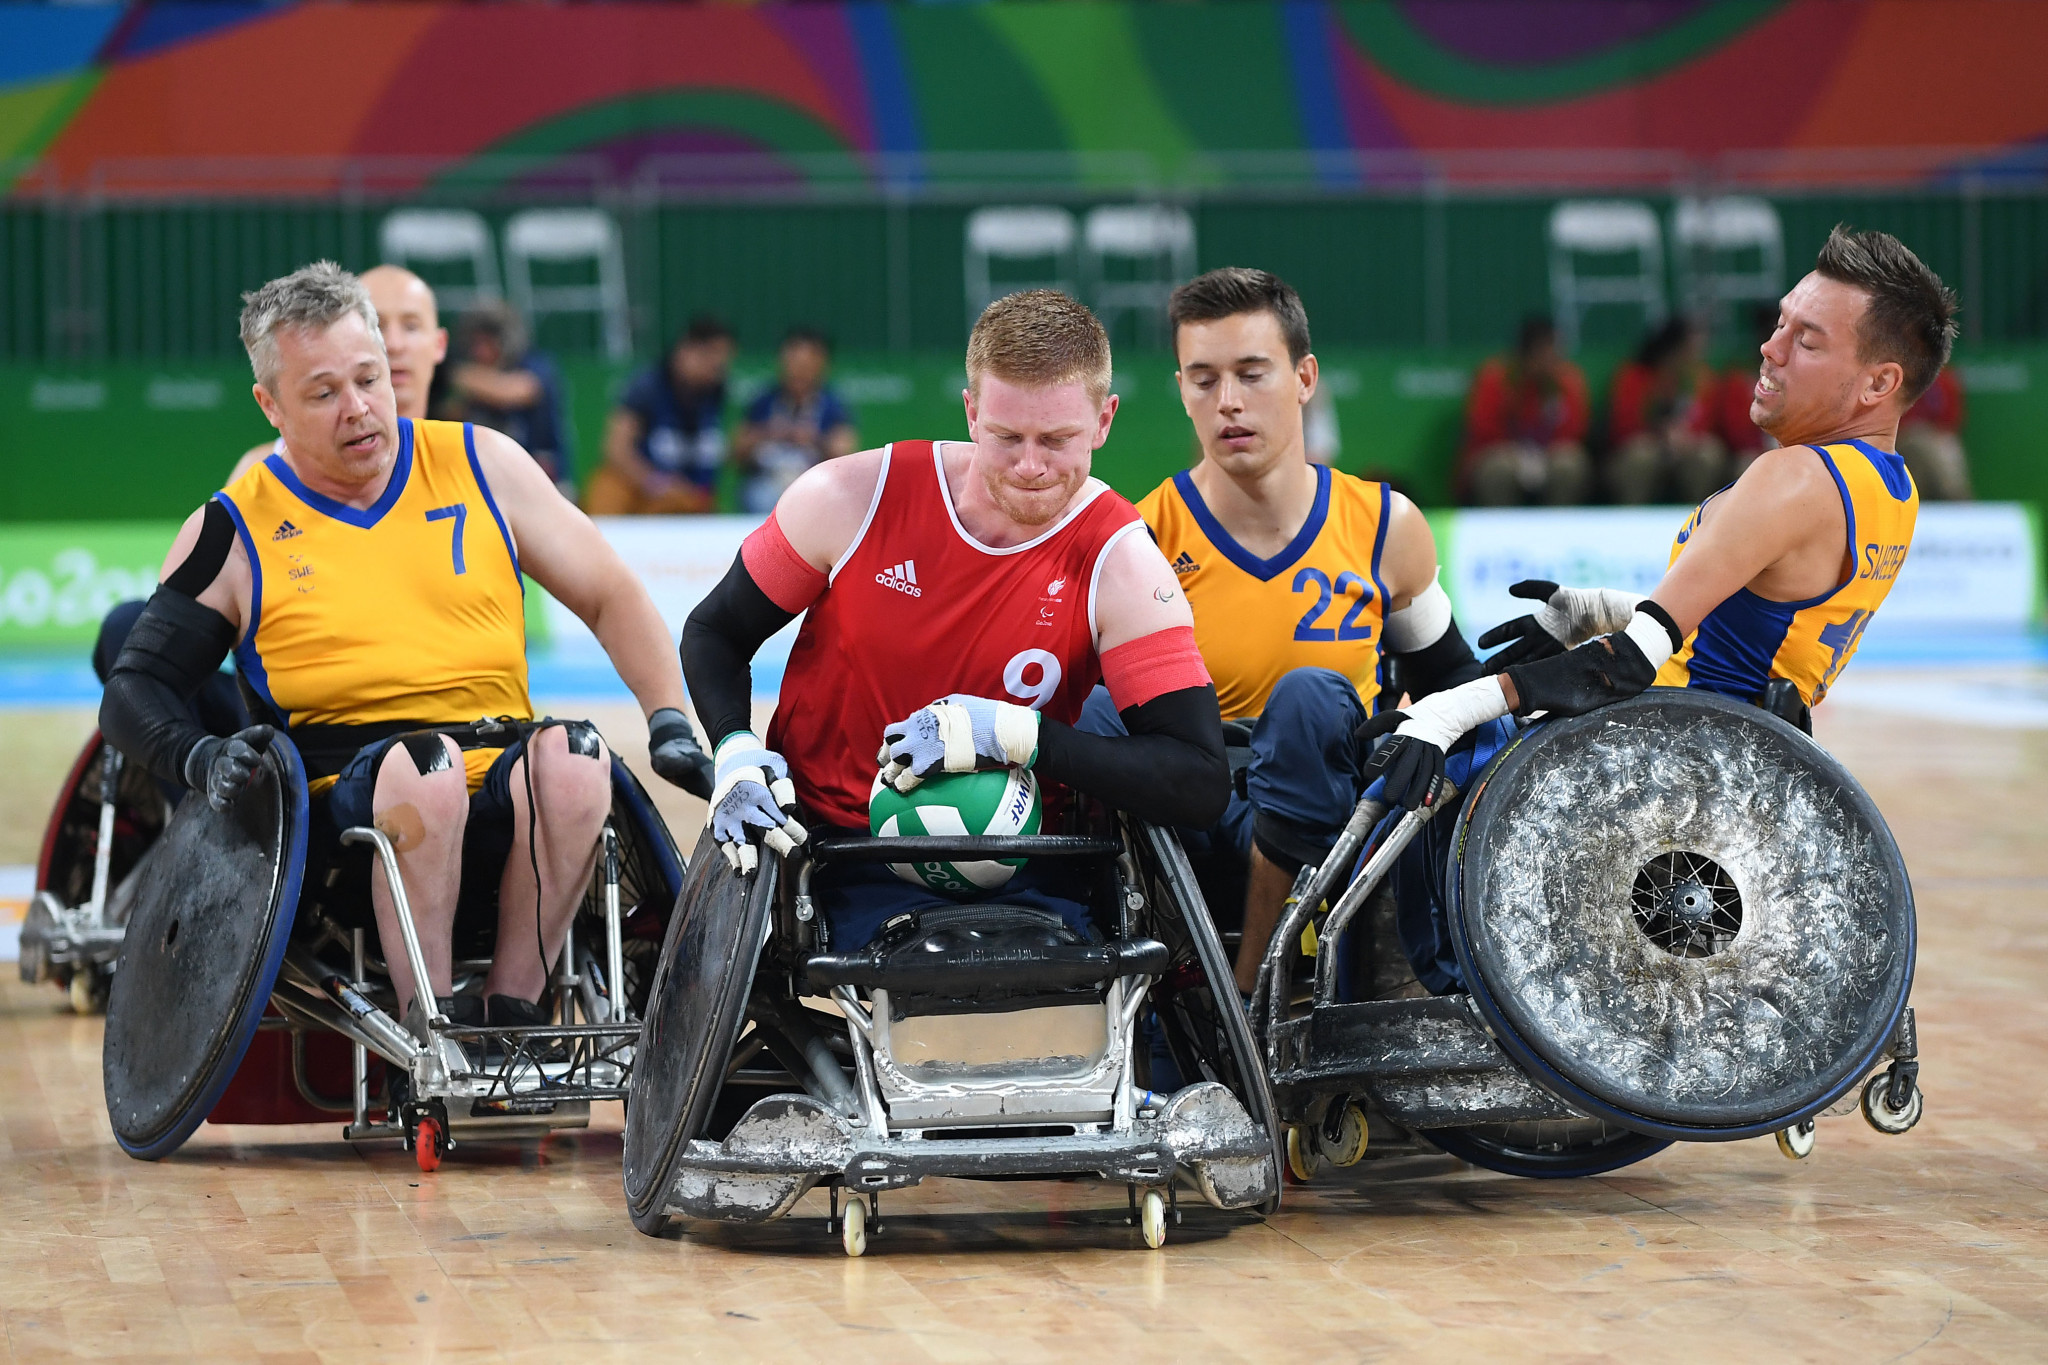 Wheelchair rugby has grown into a major Paralympic sport ©Getty Images